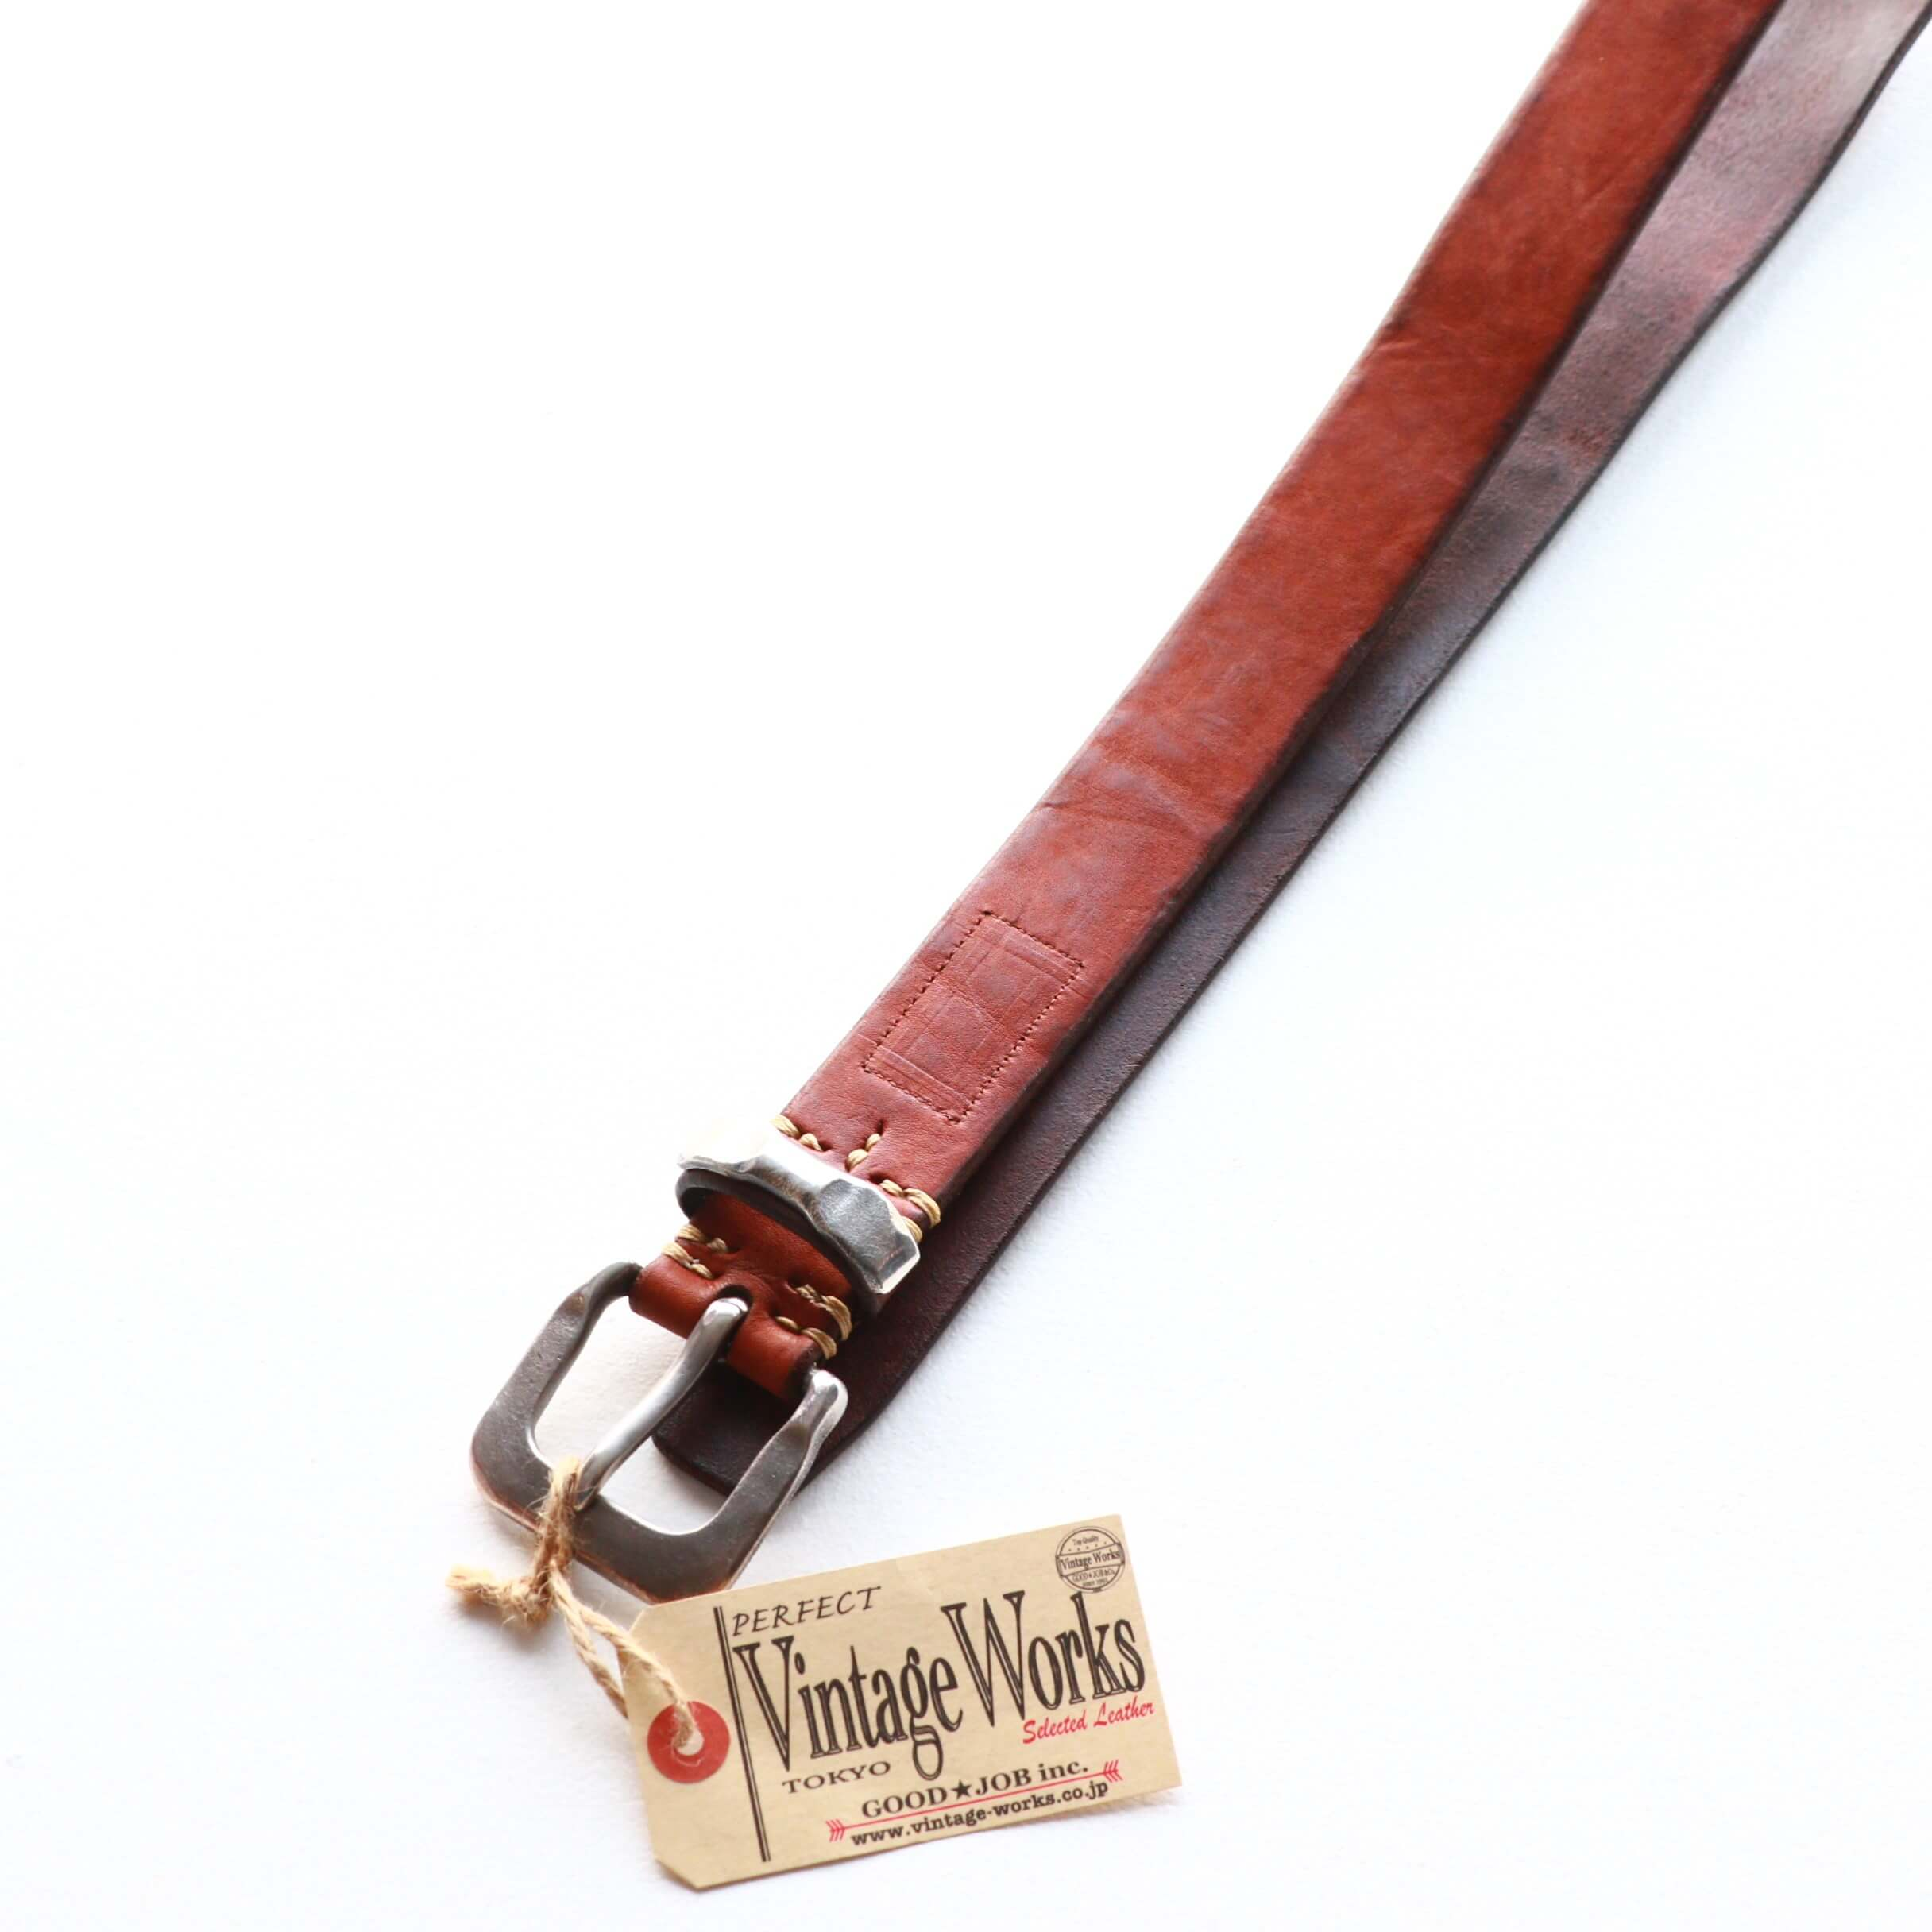 Vintage Works ヴィンテージワークス Leather belt 7Hole レザーベルト 7ホール DH5730